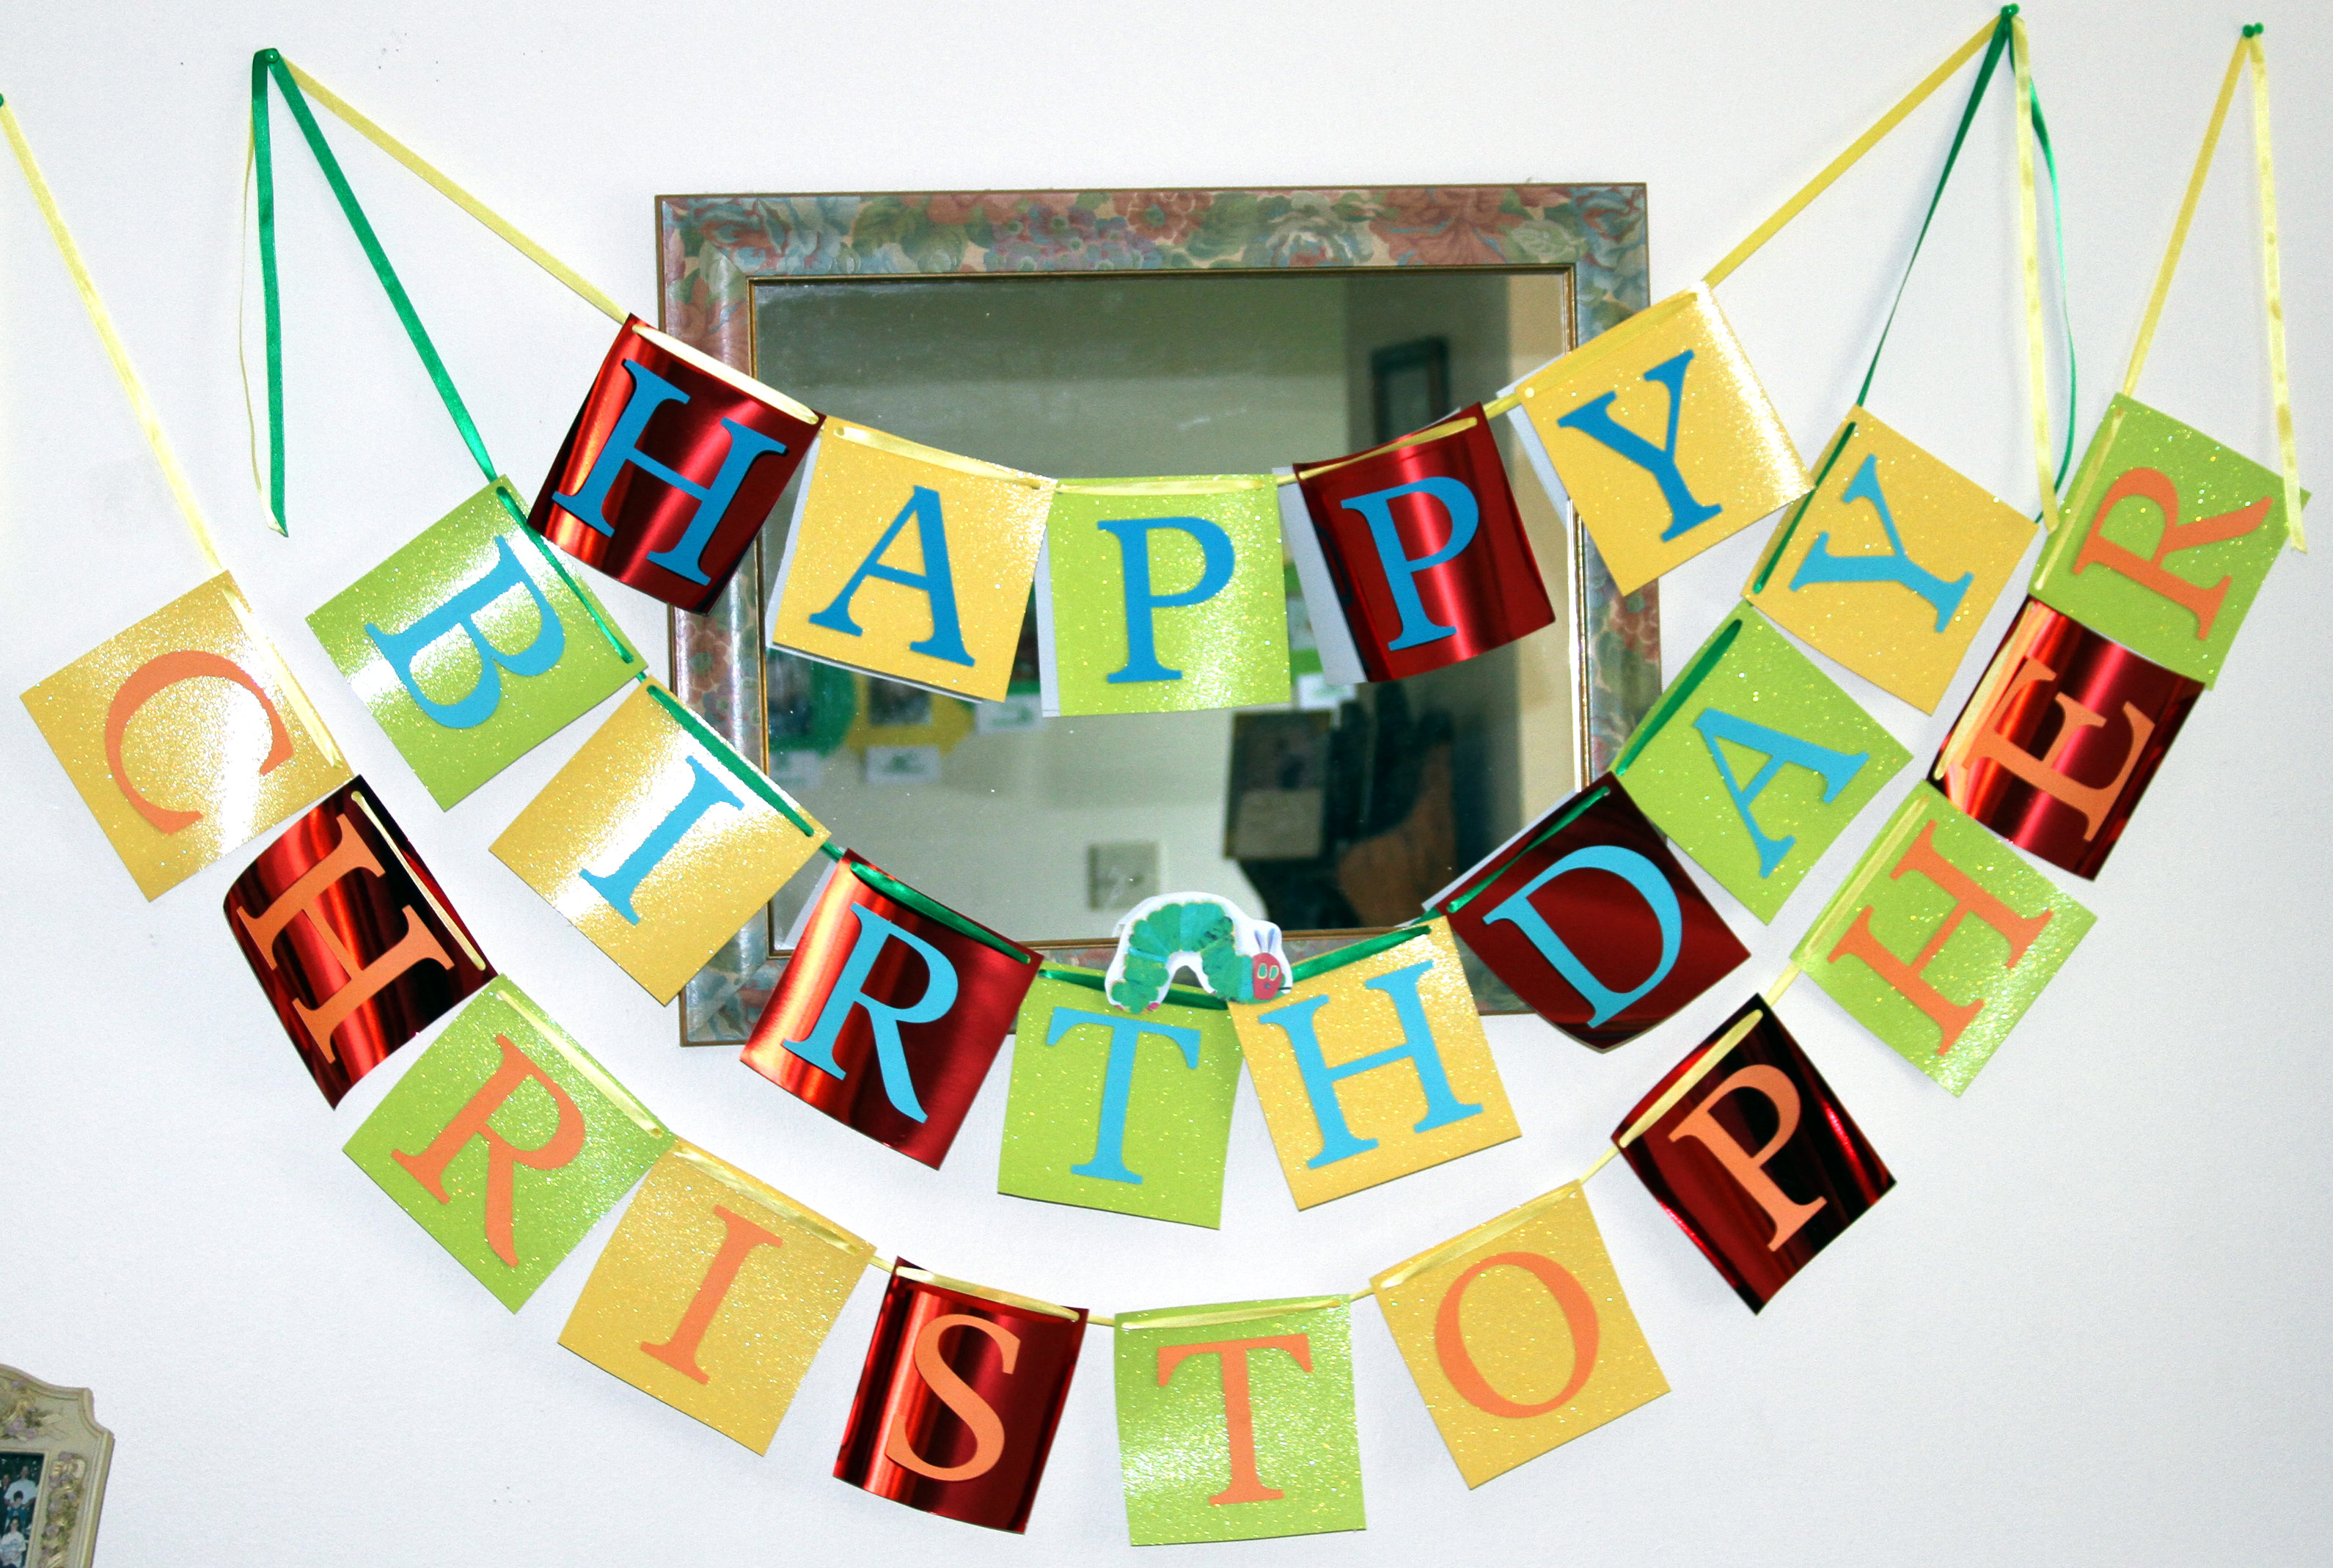 birthday banner decoration ideas ; The-Very-Hungry-Caterpillar-Happy-Birthday-banner-and-other-birthday-decoration-ideas